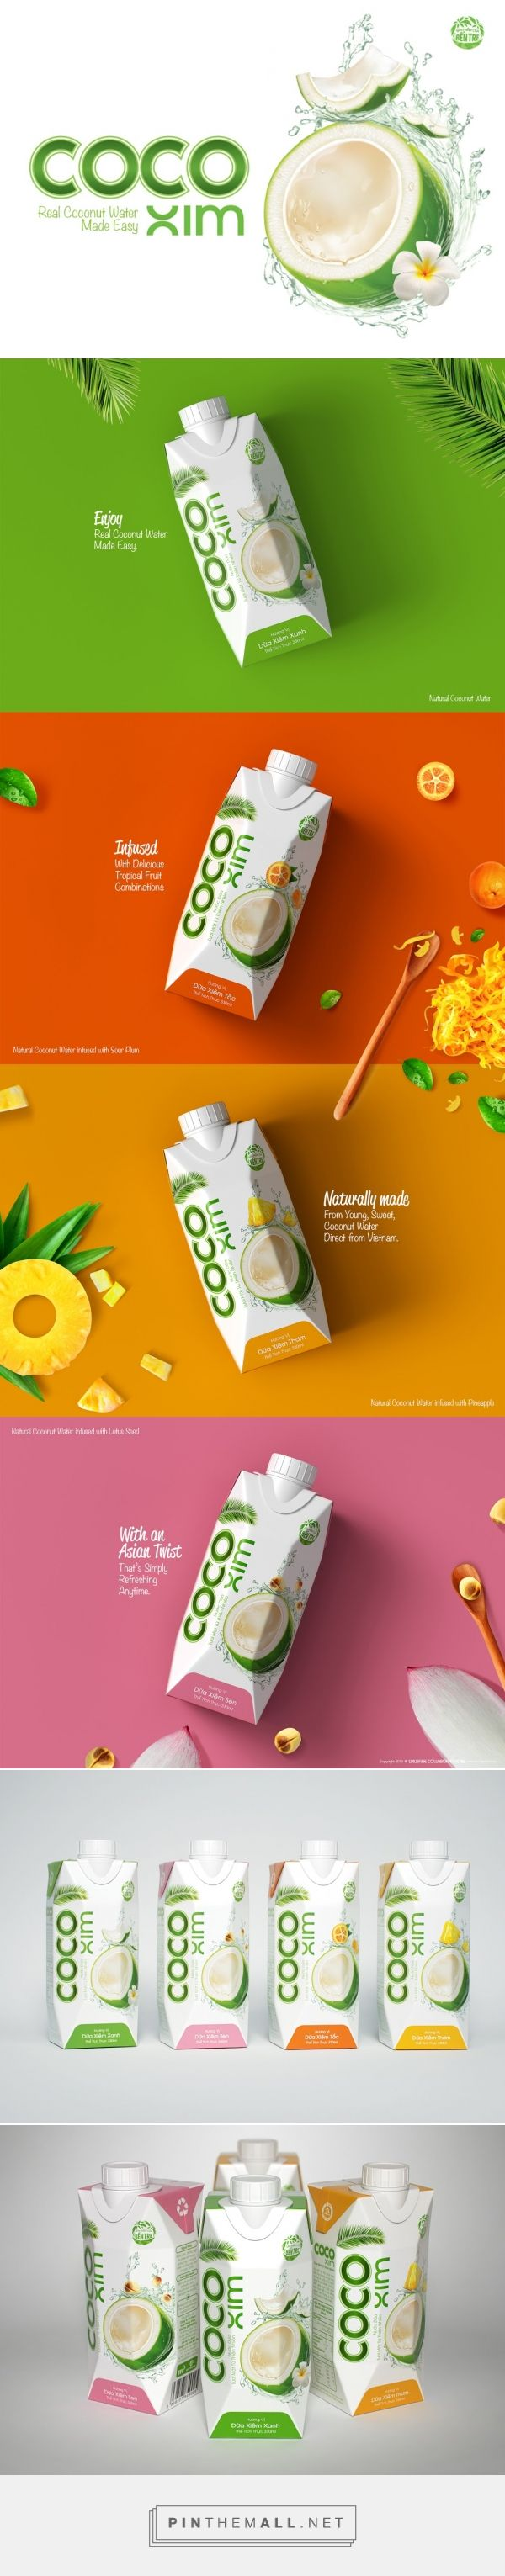 CocoXim Coconut Water - Packaging of the World - Creative Package Design Gallery - http://www.packagingoftheworld.com/2016/03/cocoxim-coconut-water.html